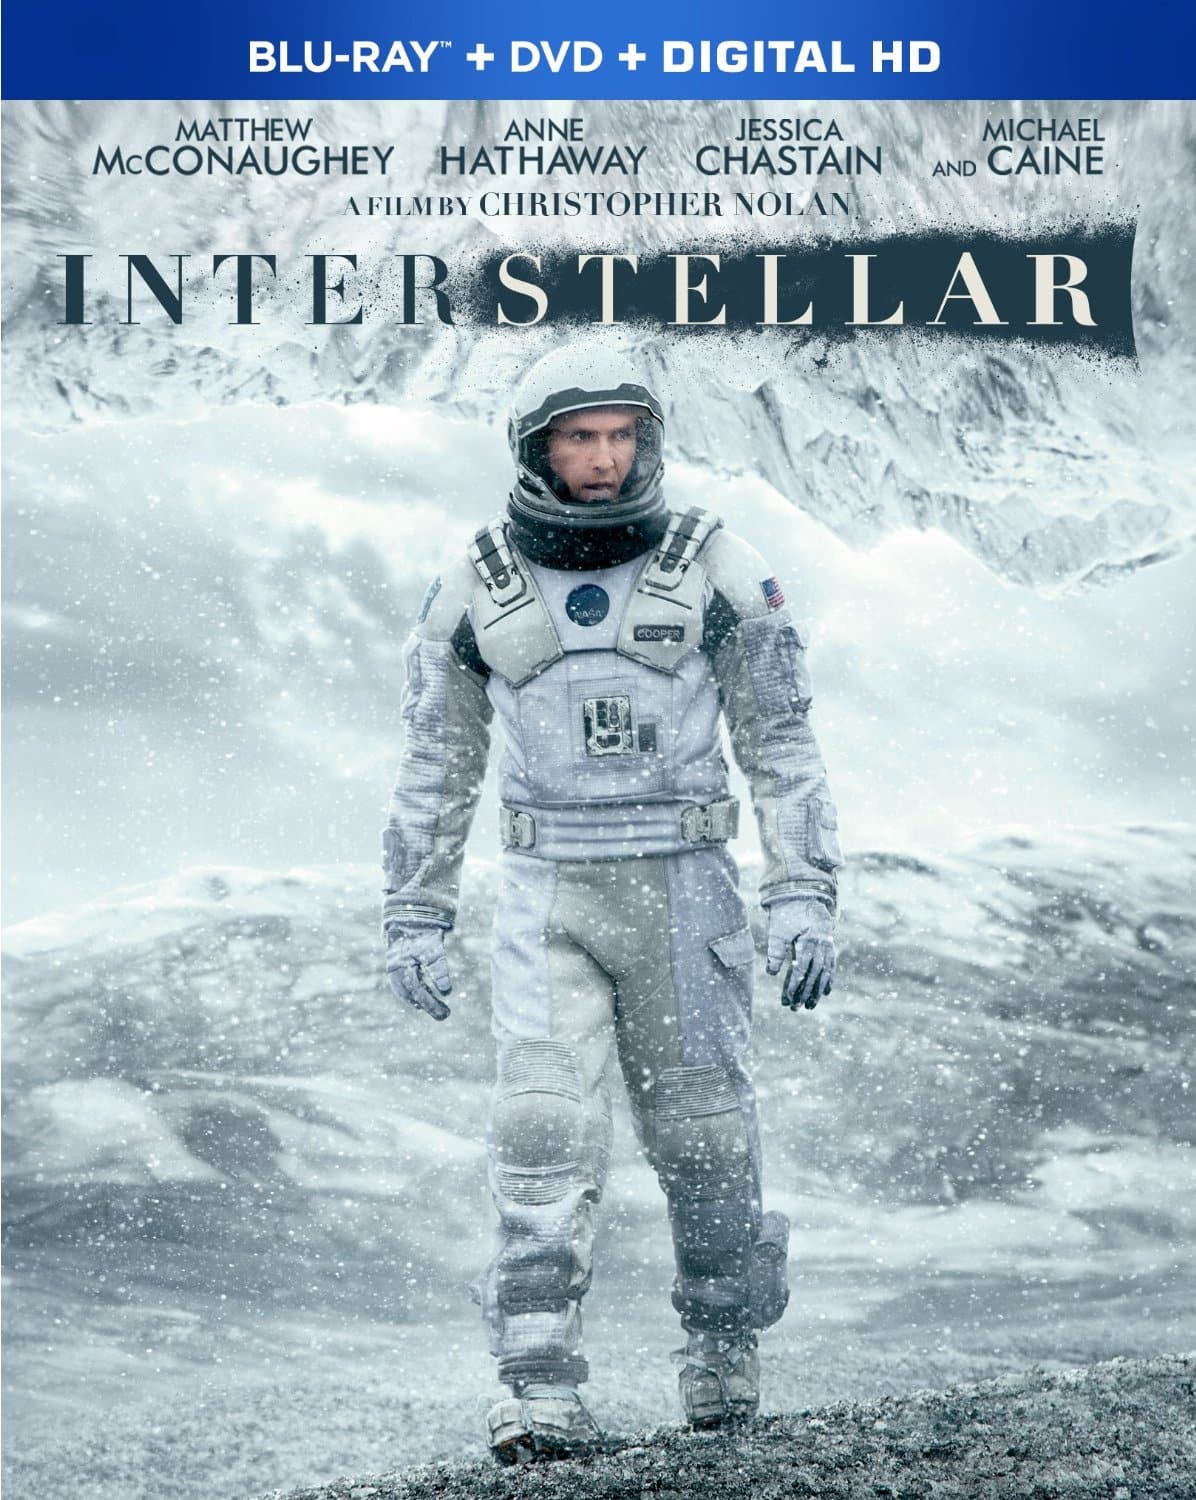 El trailer honesto de Interstellar